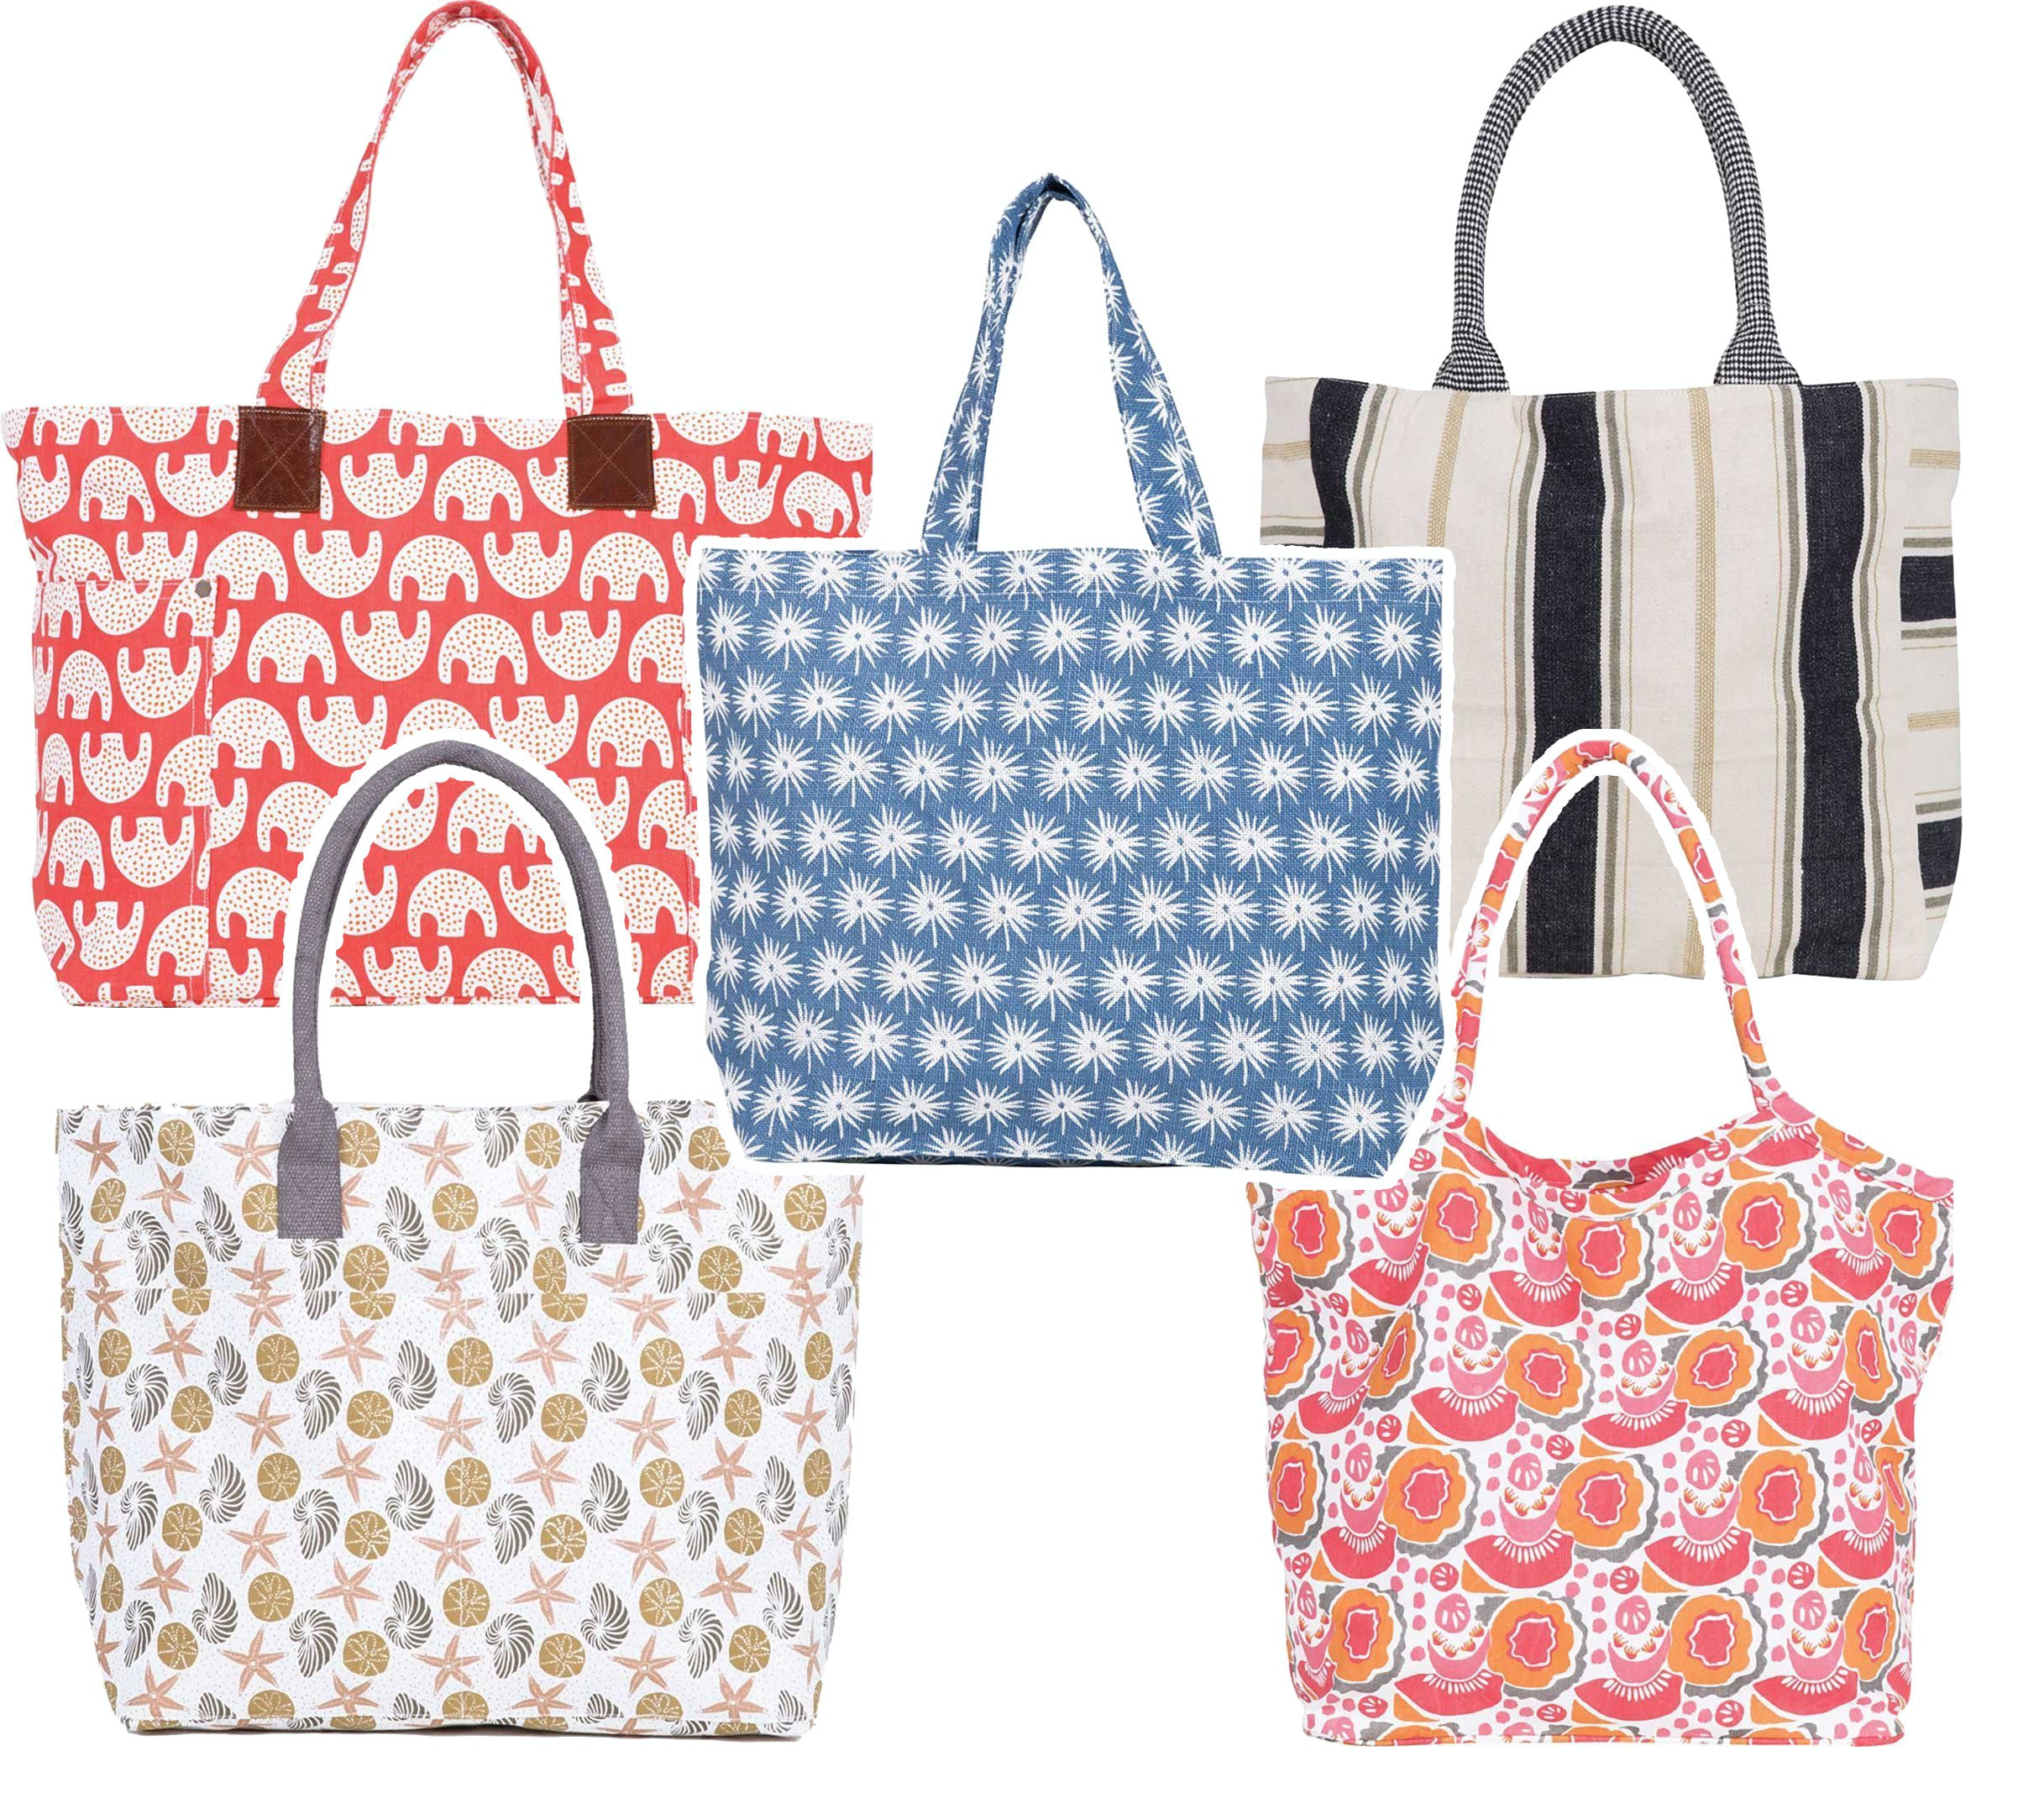 Collect all of our cute tote bags for the beach!